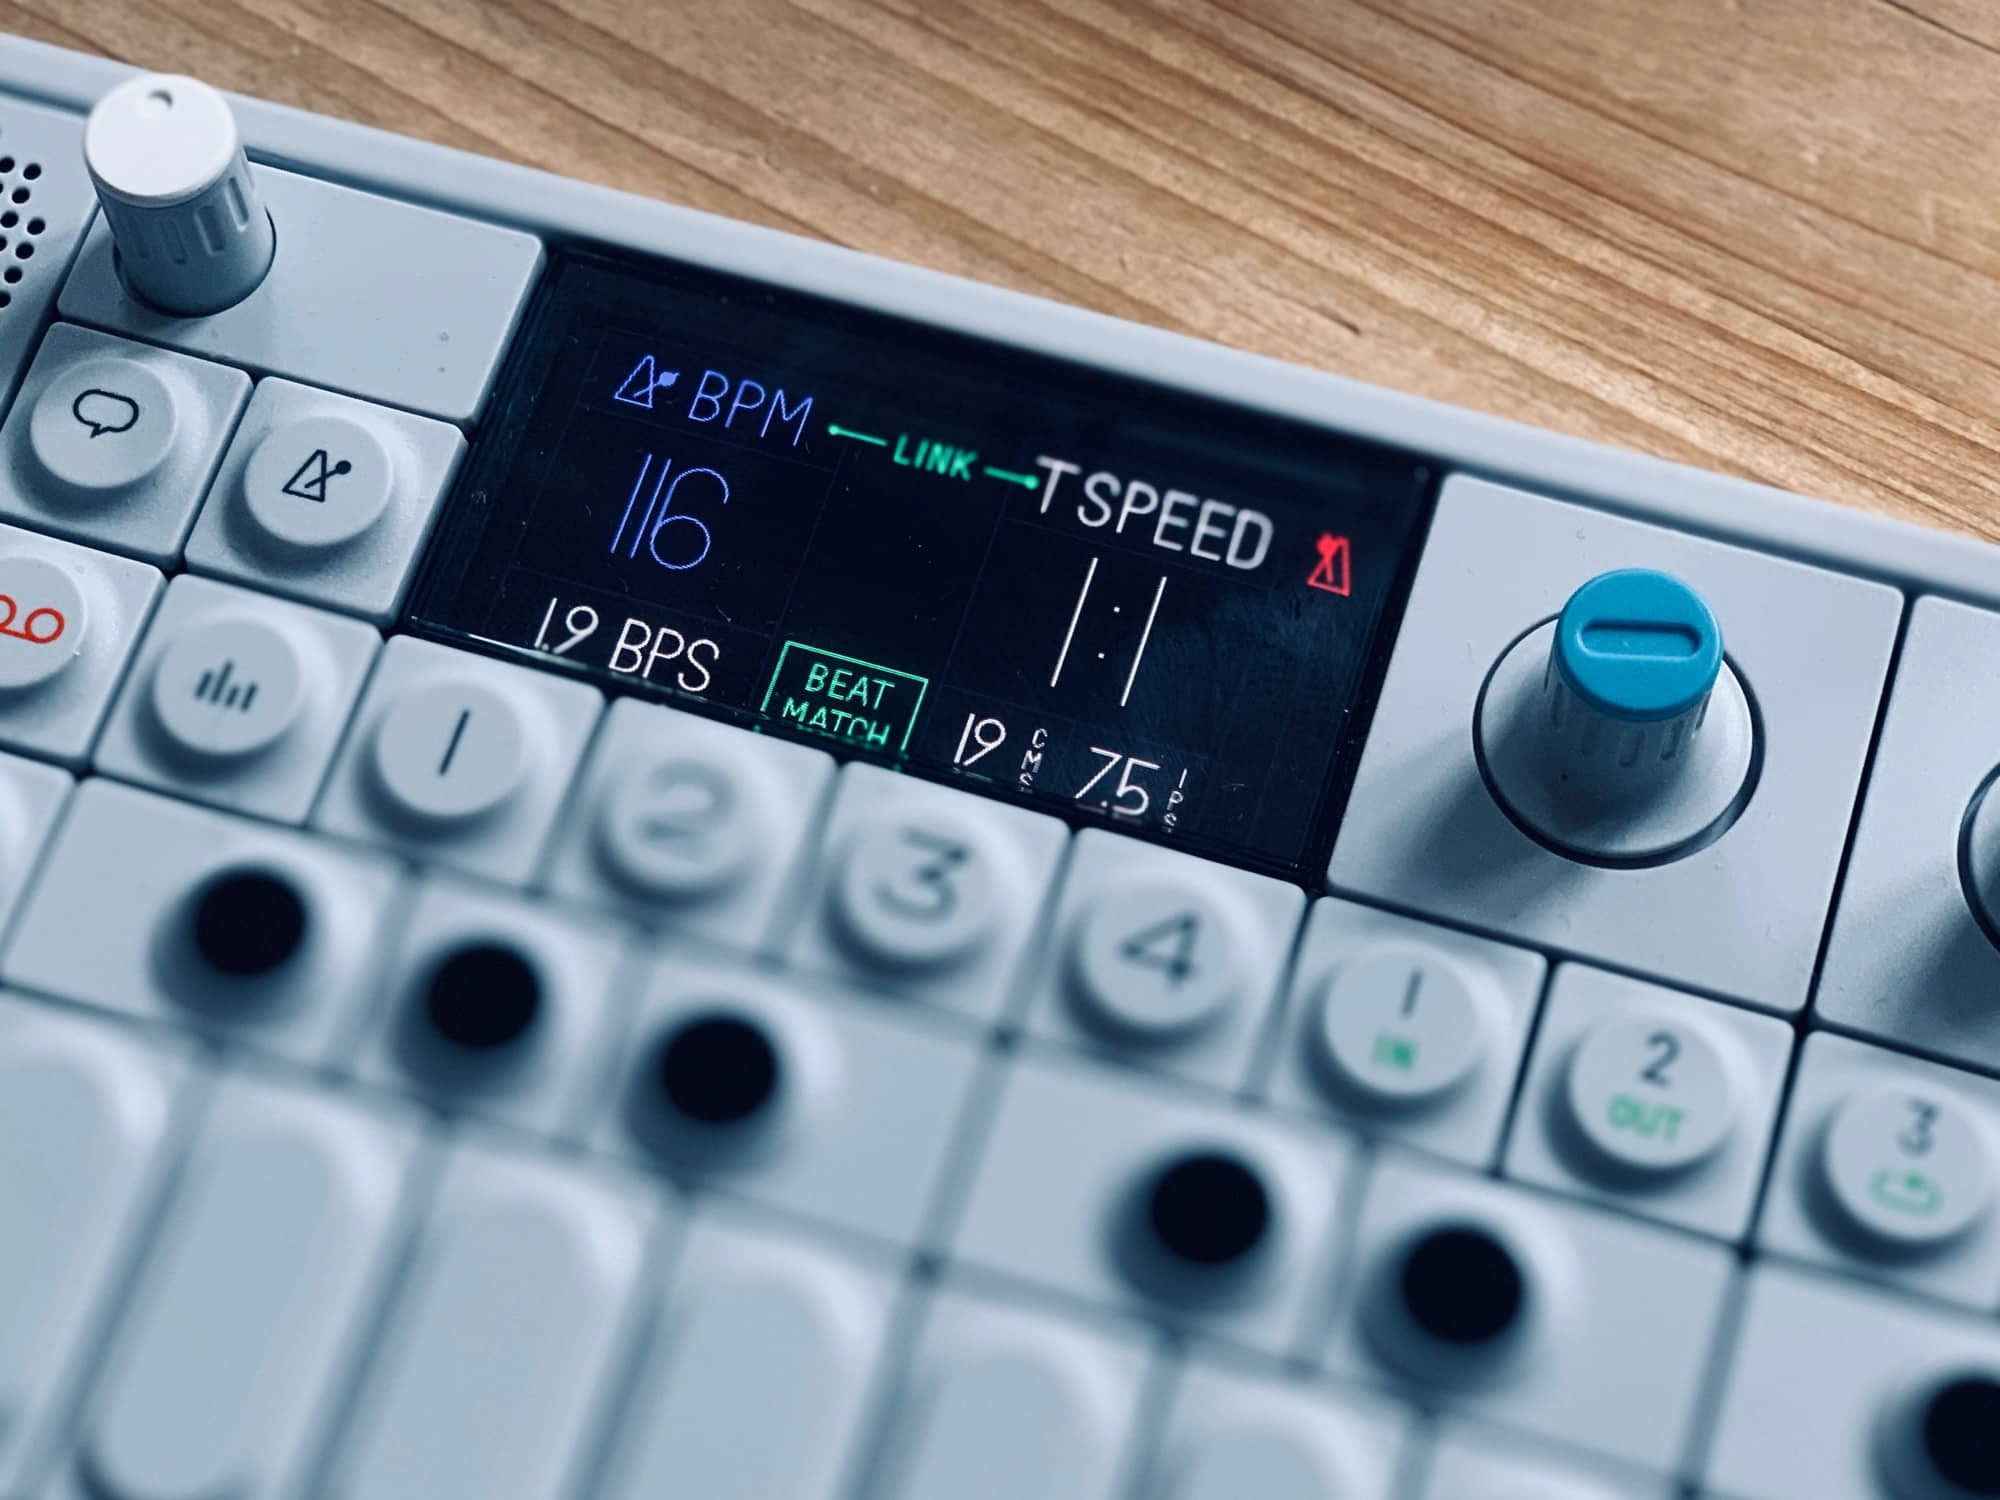 In the OP-1's metronome screen, twist the green knob until you see BEAT MATCH and LINK.